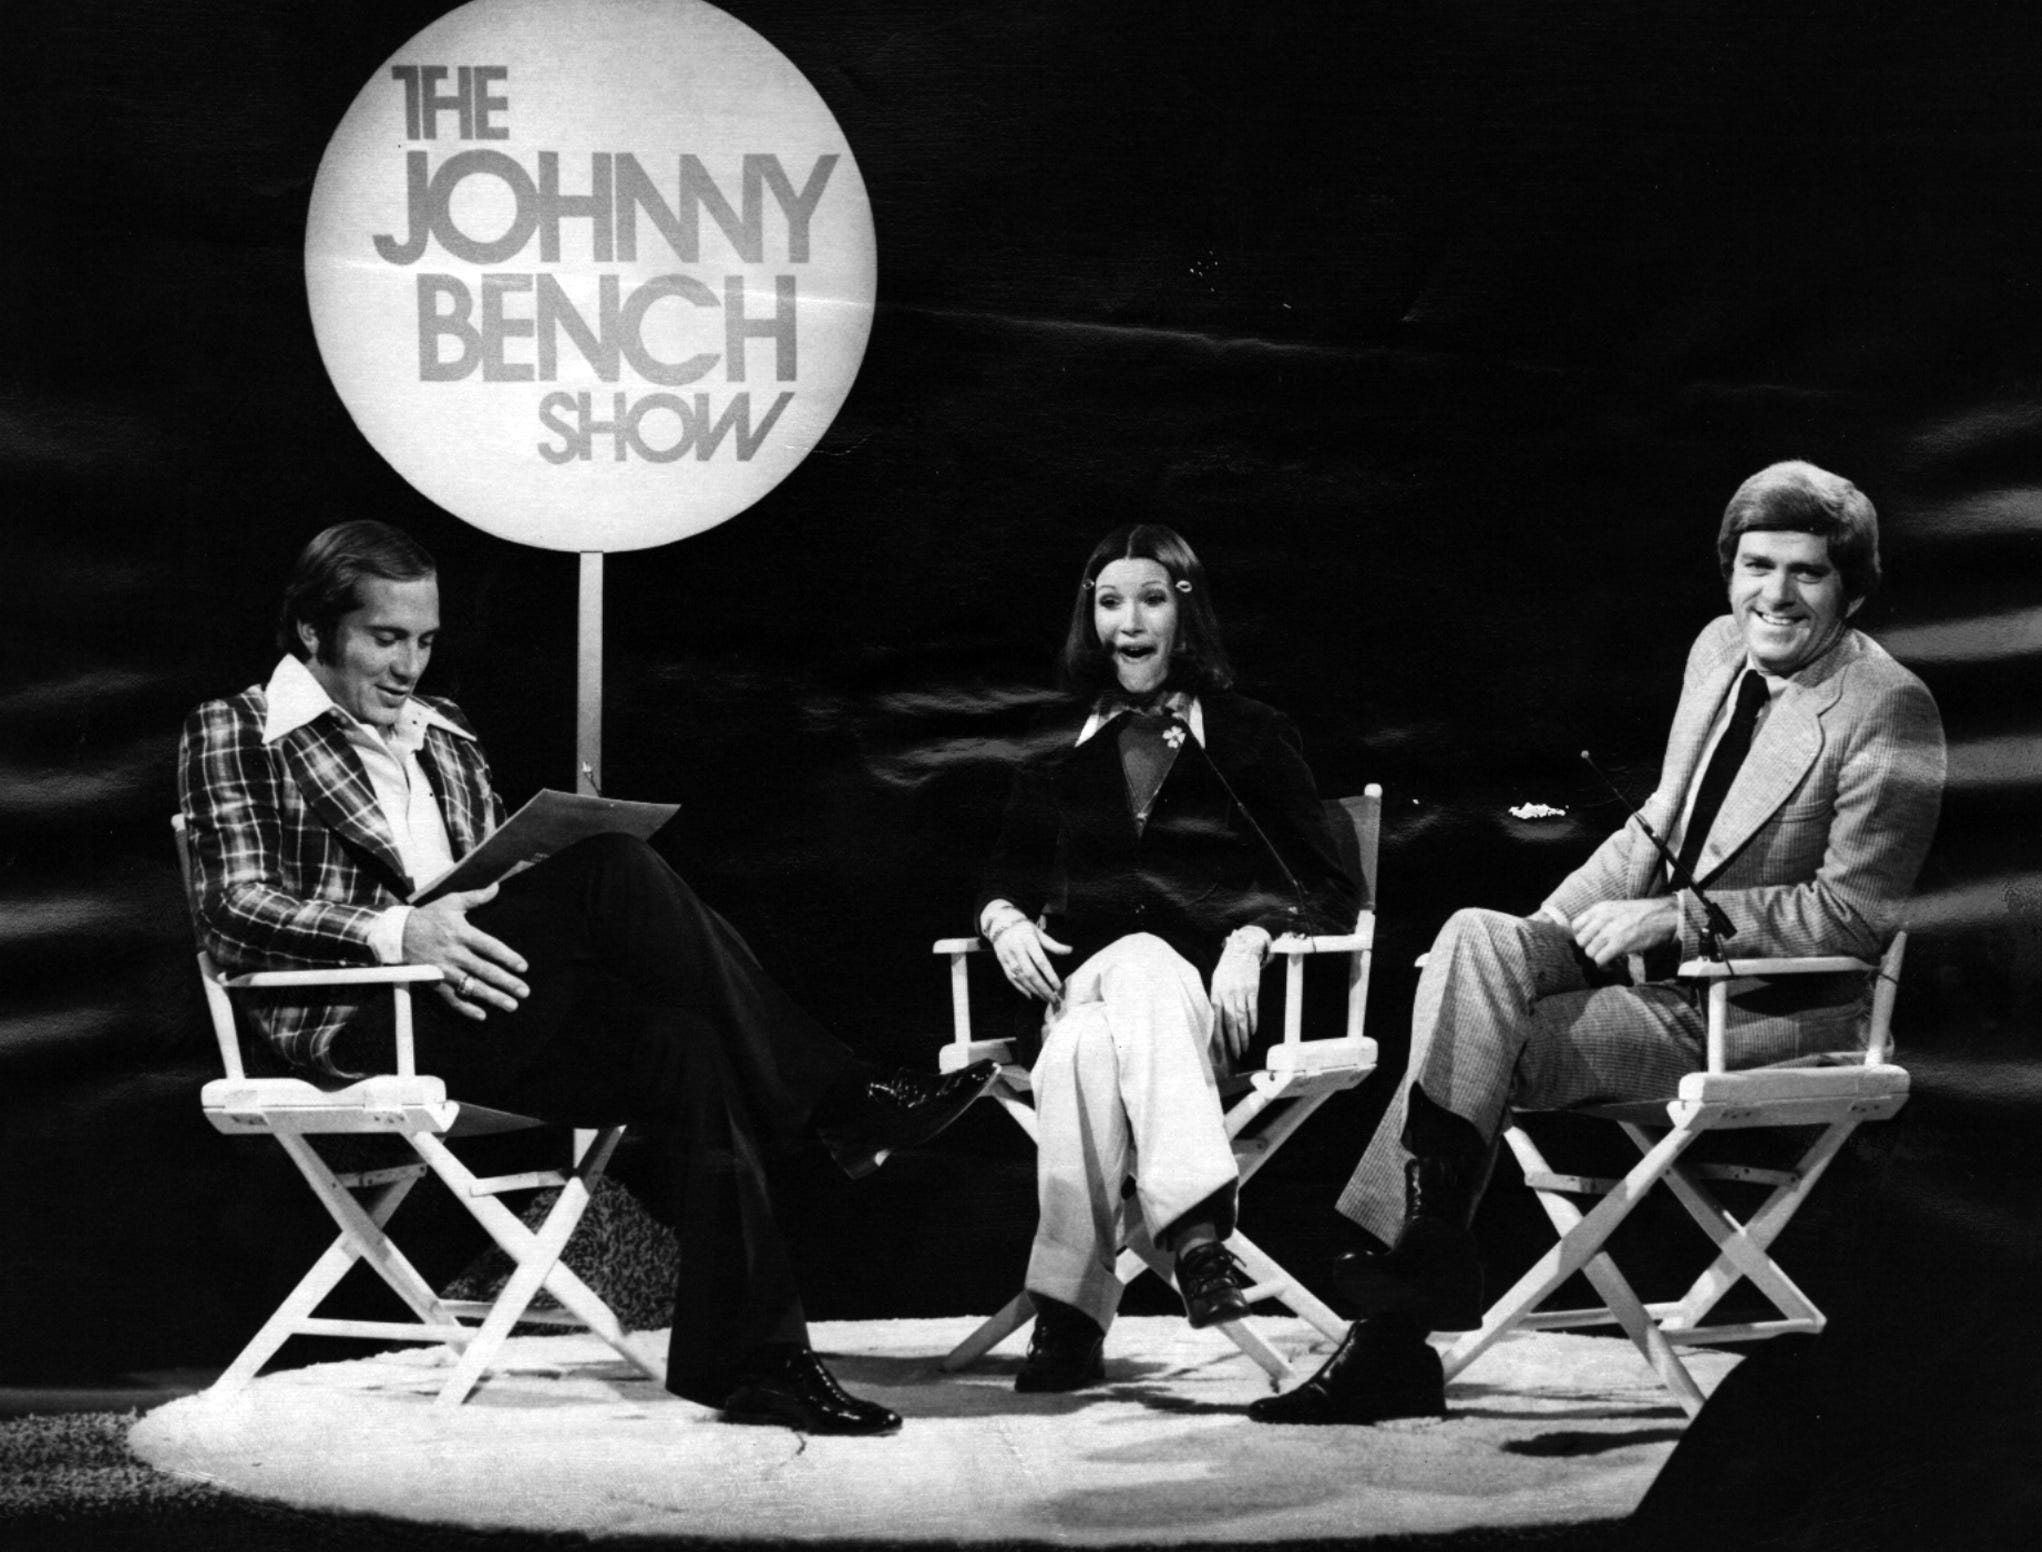 """1973: Phil Donahue and publisher of male nude calendar among """"Johnny Bench Show"""" guest April 28th: Cincinnati Reds' catcher Johnny Bench, left, stares in disbelief at """"Eve's 12,"""" a calendar featuring male nudes for each month of the year...Evelyn Carter, who published the """"tongue in cheek"""" calendar for women, seems amazed at Johnny's reaction...and Phil Donahue, right, well, what could surprise the host of Avco Broadcasting's nationally syndicated talk show? Donahue and Carter will discuss the controversial calendar with Bench on Channel 5's """"Johnny Bench Show,"""" Saturday, April 28th, from 1:30-2:00 p.m. Also appearing with Johnny on the April 28th telecast will be composer/singer Jerry Foster (not pictured), who wrote the Sonny and Cher hit, """"When You Say Love."""" From the Enquirer archives scanned August 8, 2013"""